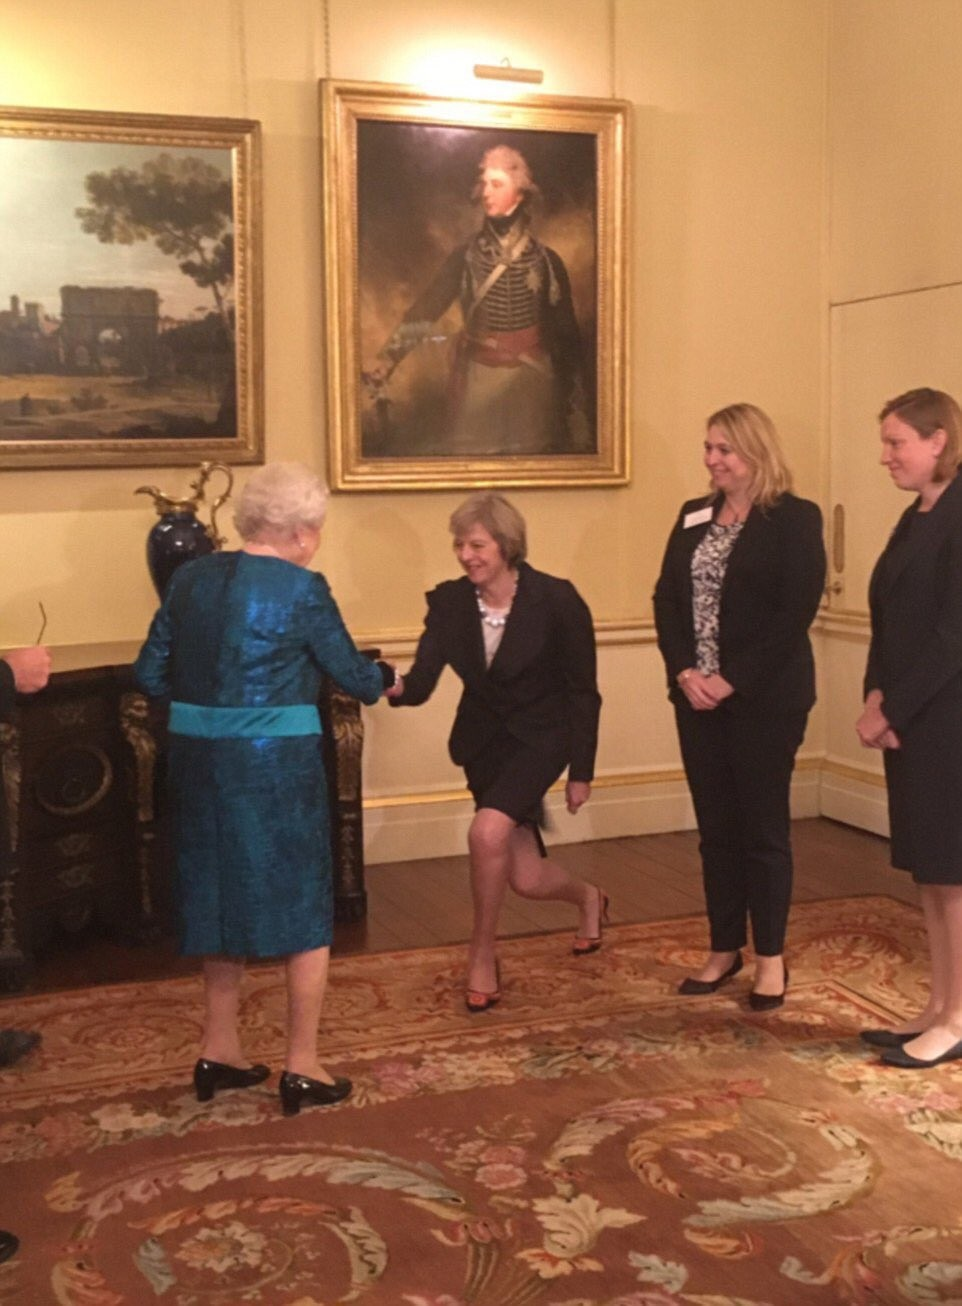 More photos of British Prime Minister Therasa May almost kneeling to greet members of the royal family